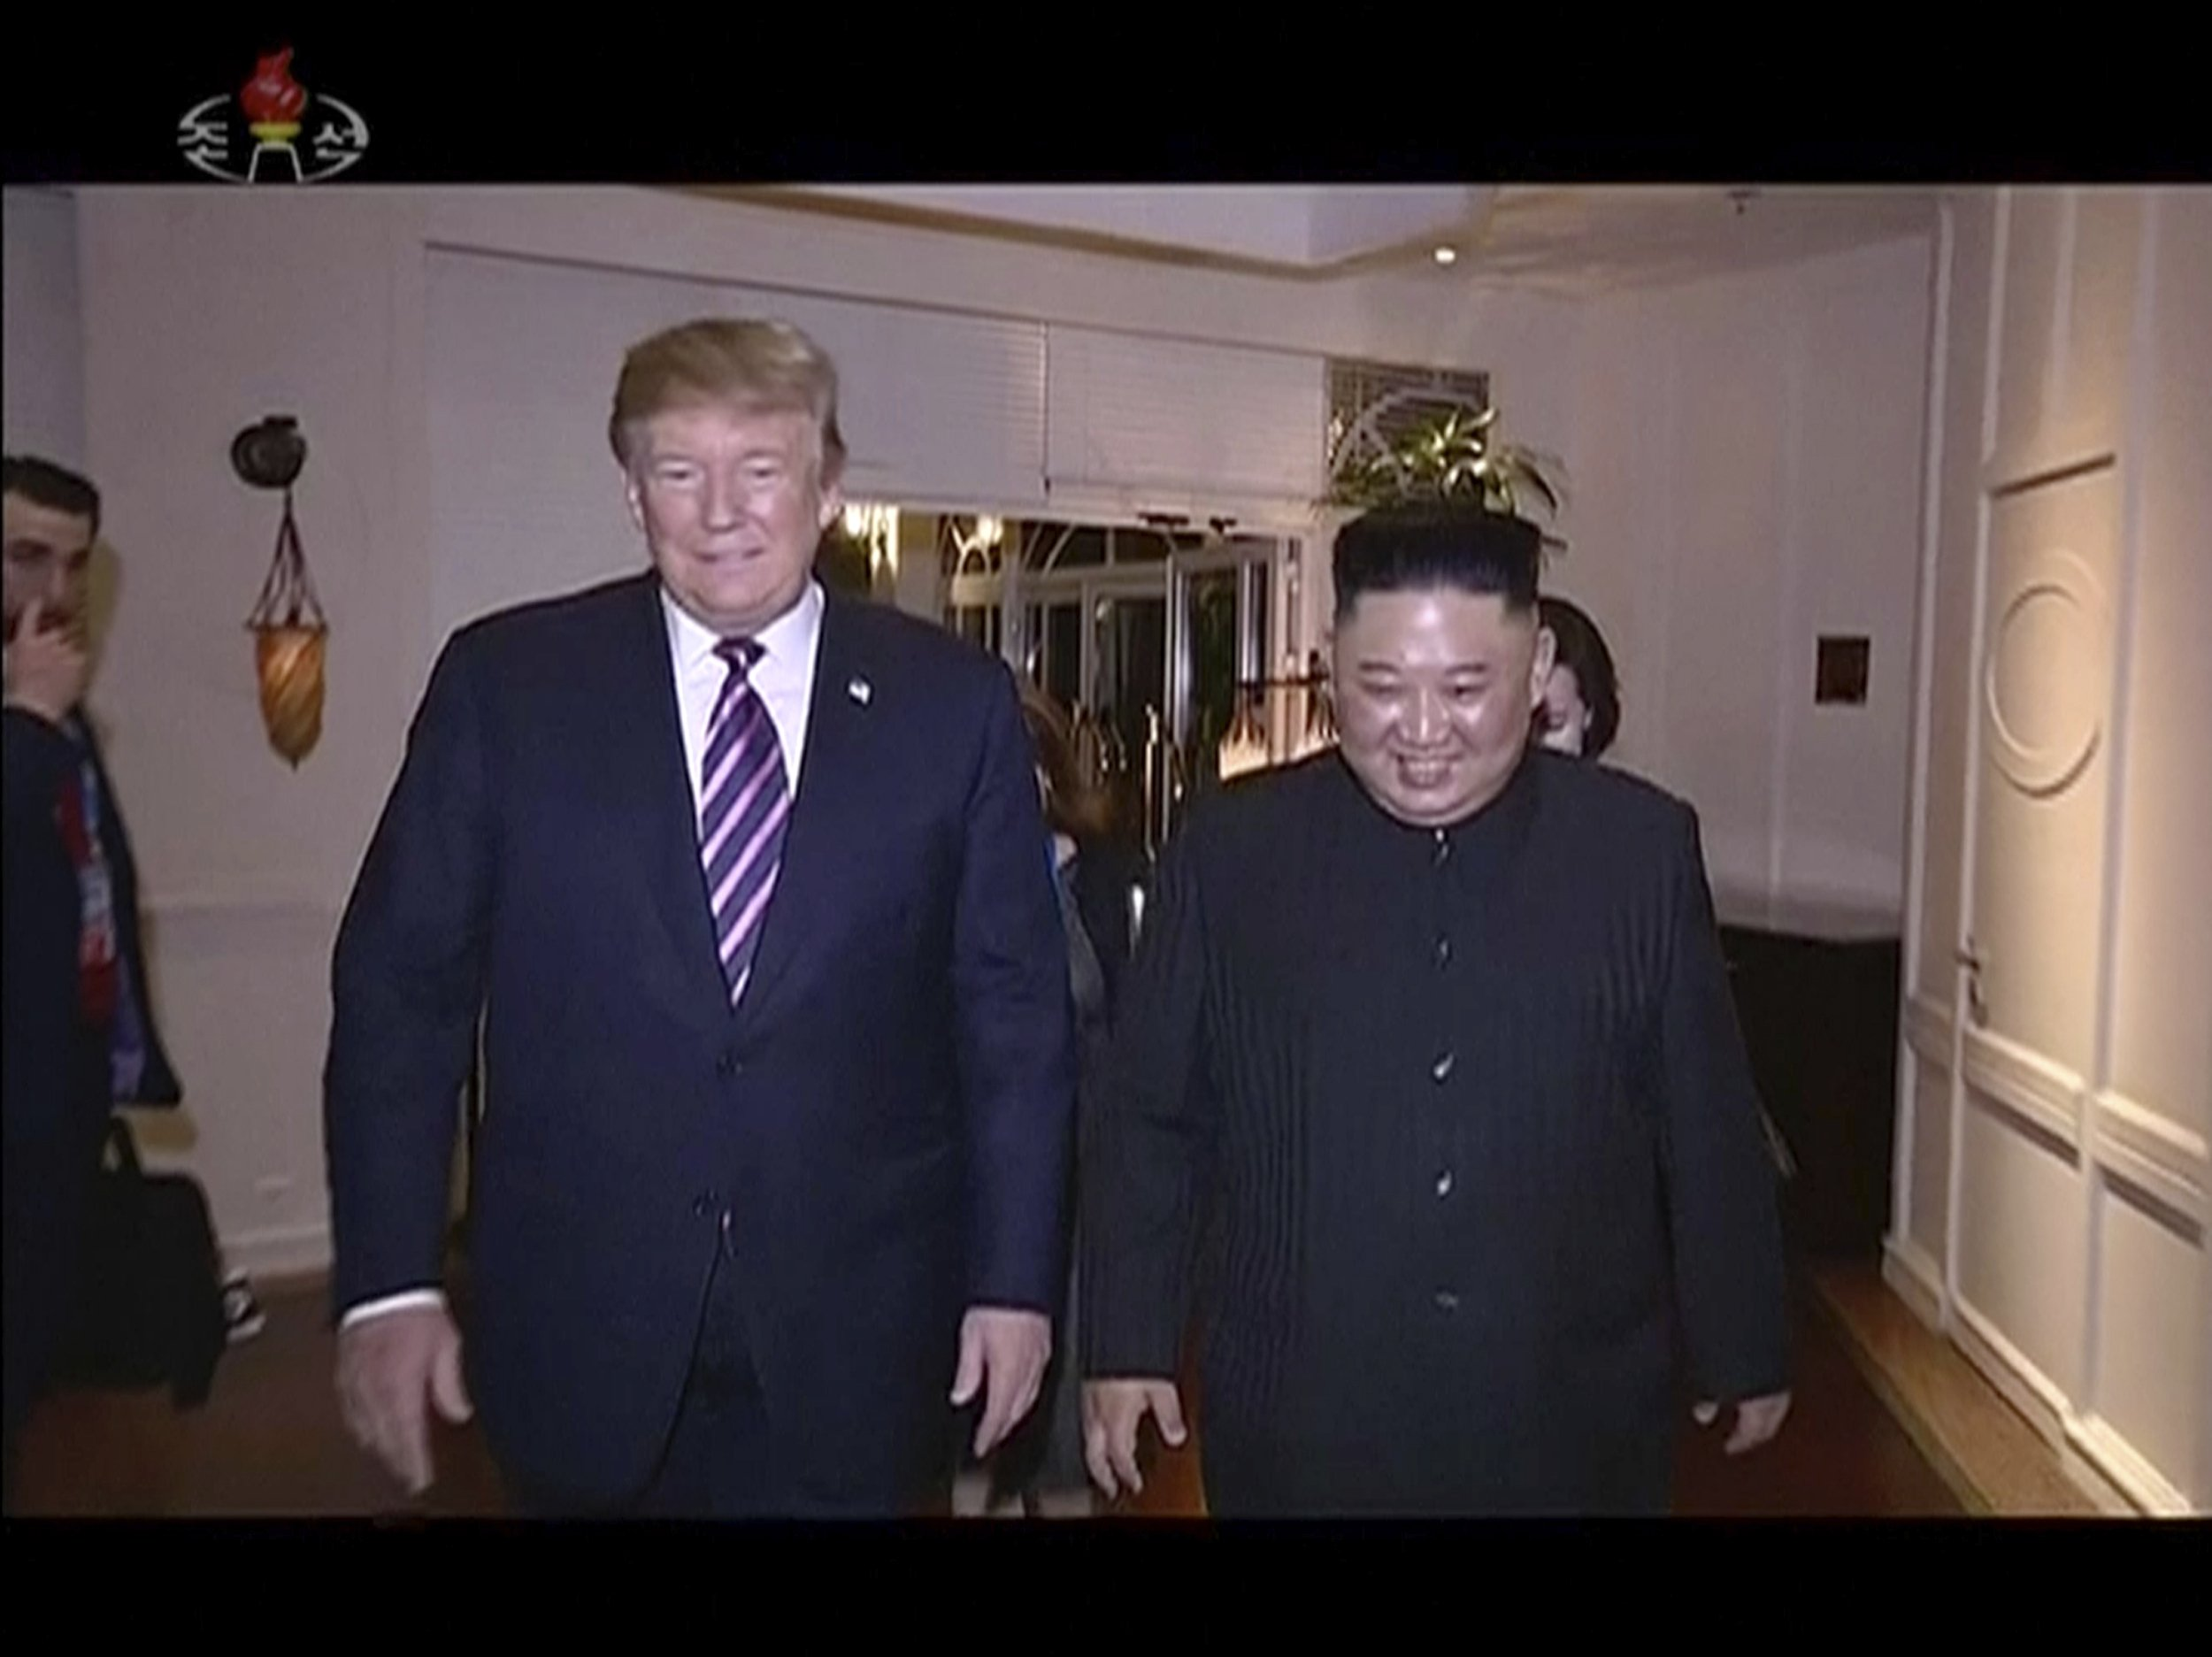 N. Korea airs documentary glorifying Kim's summit with Trump